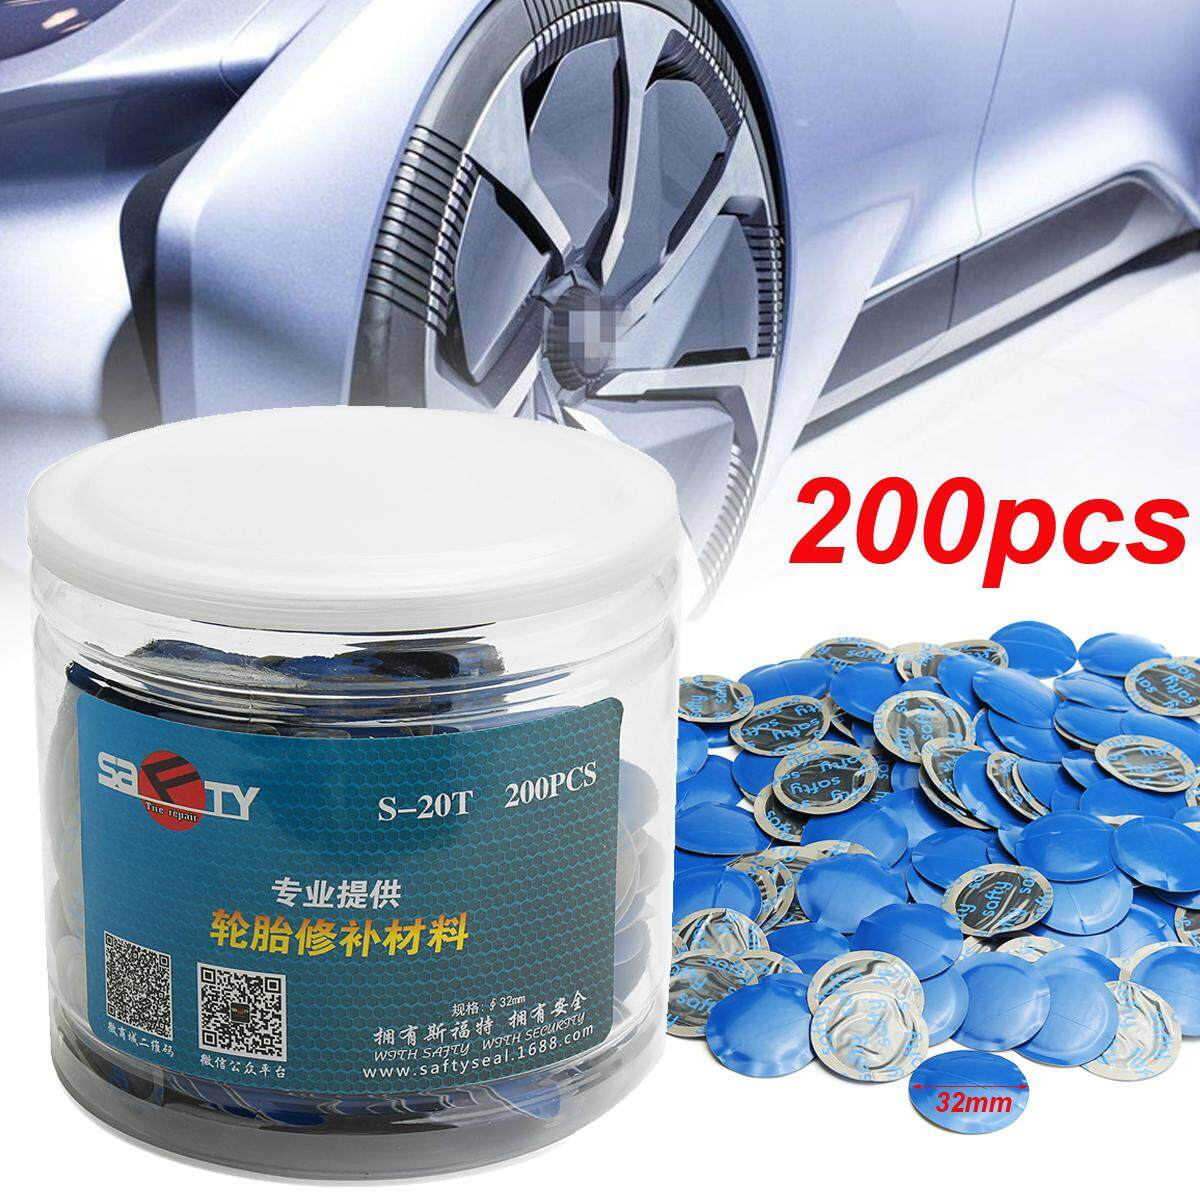 Universal 24pcs 32mm Natural Rubber Wired Tyre Puncture Repair Mushroom Patch By Autoleader.